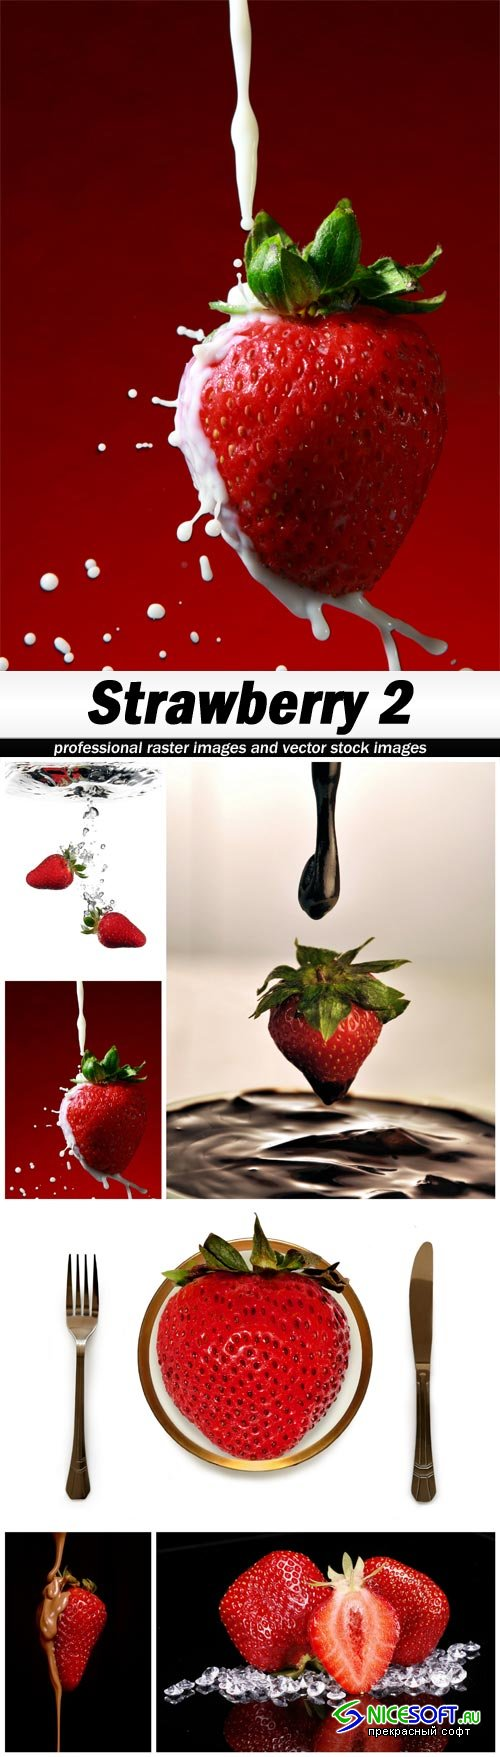 Strawberry 2 - 6 UHQ JPEG